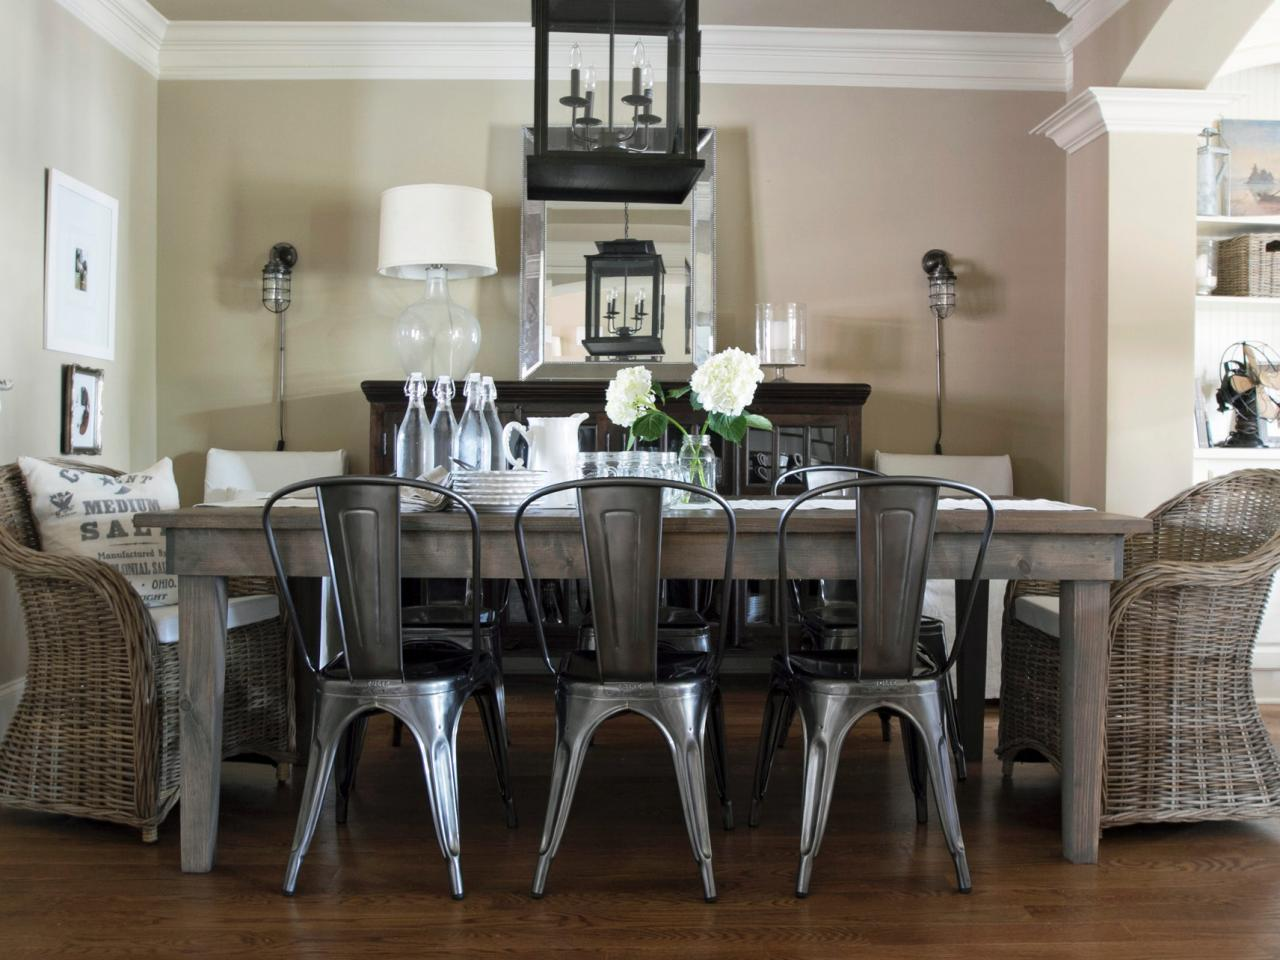 Stunning How to Mixi Dining Room Chairs mixing dining room chair styles diningroom interiors